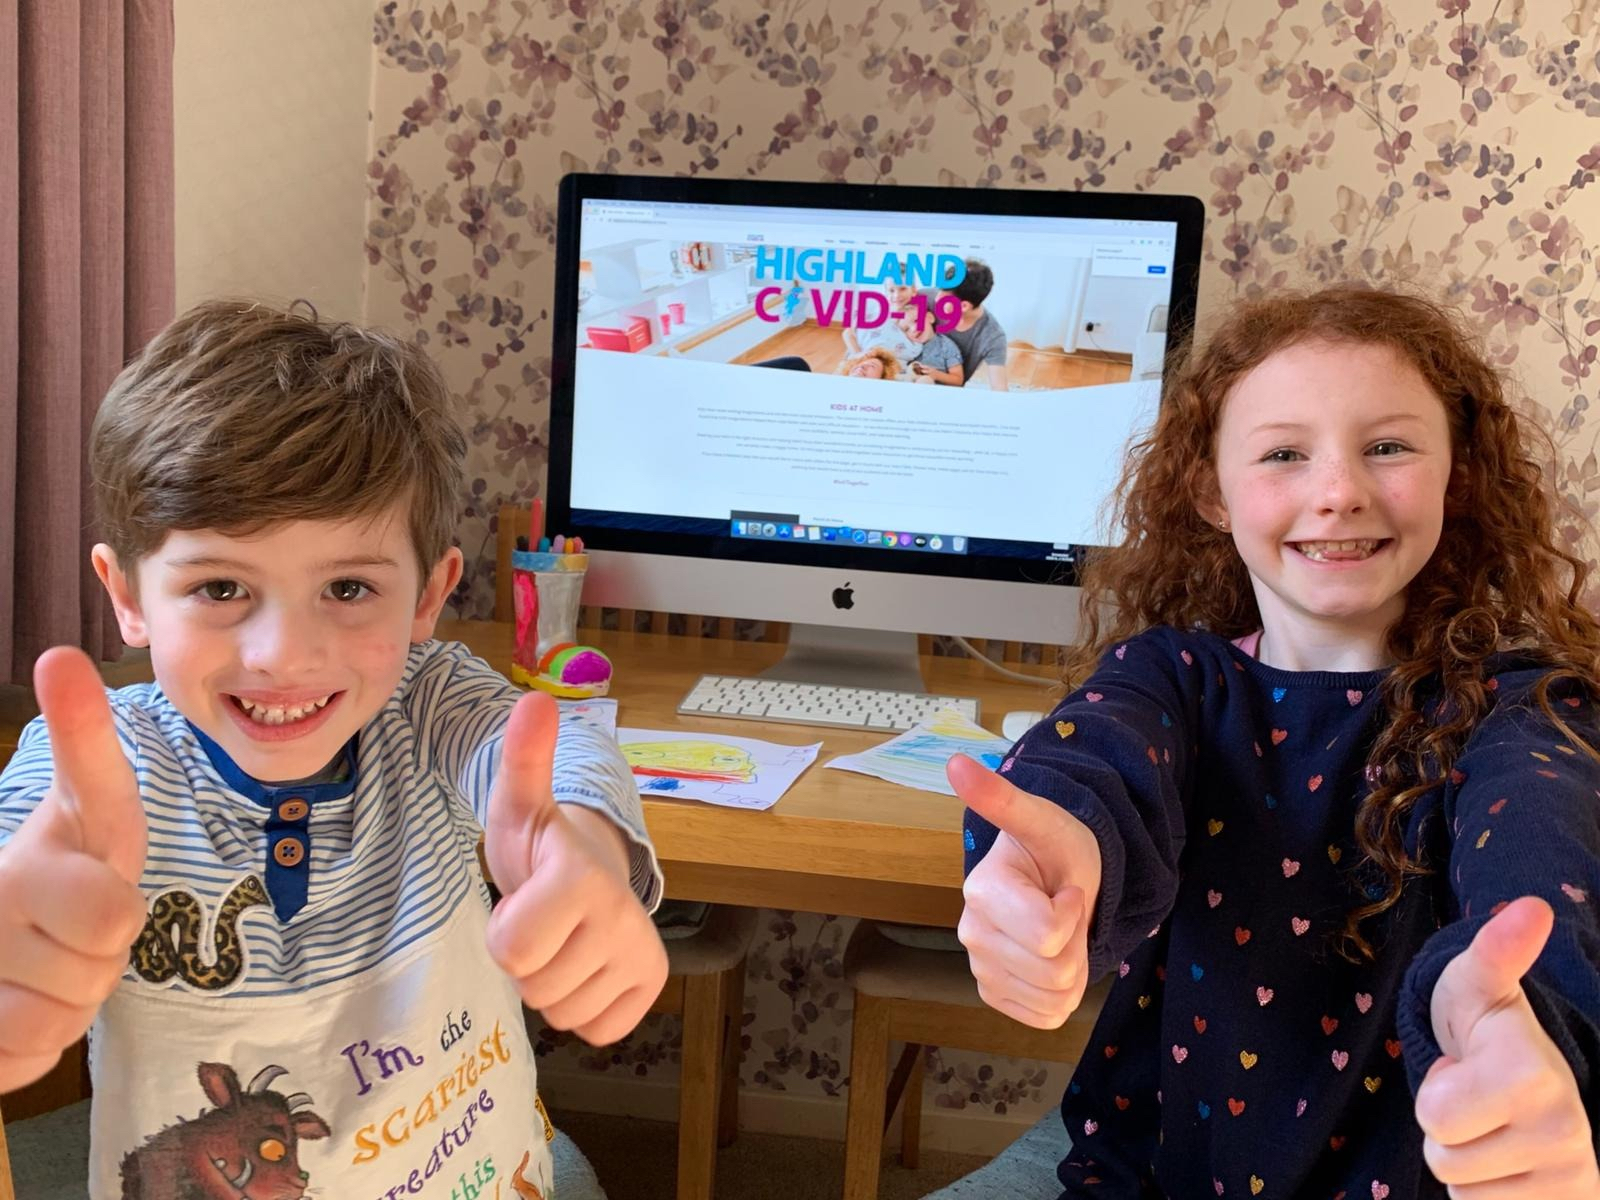 of Ella-Mae Hosie, 8, and Theo Hosie, 4, from Inverness, enjoying the Kids Zone activities on the website.